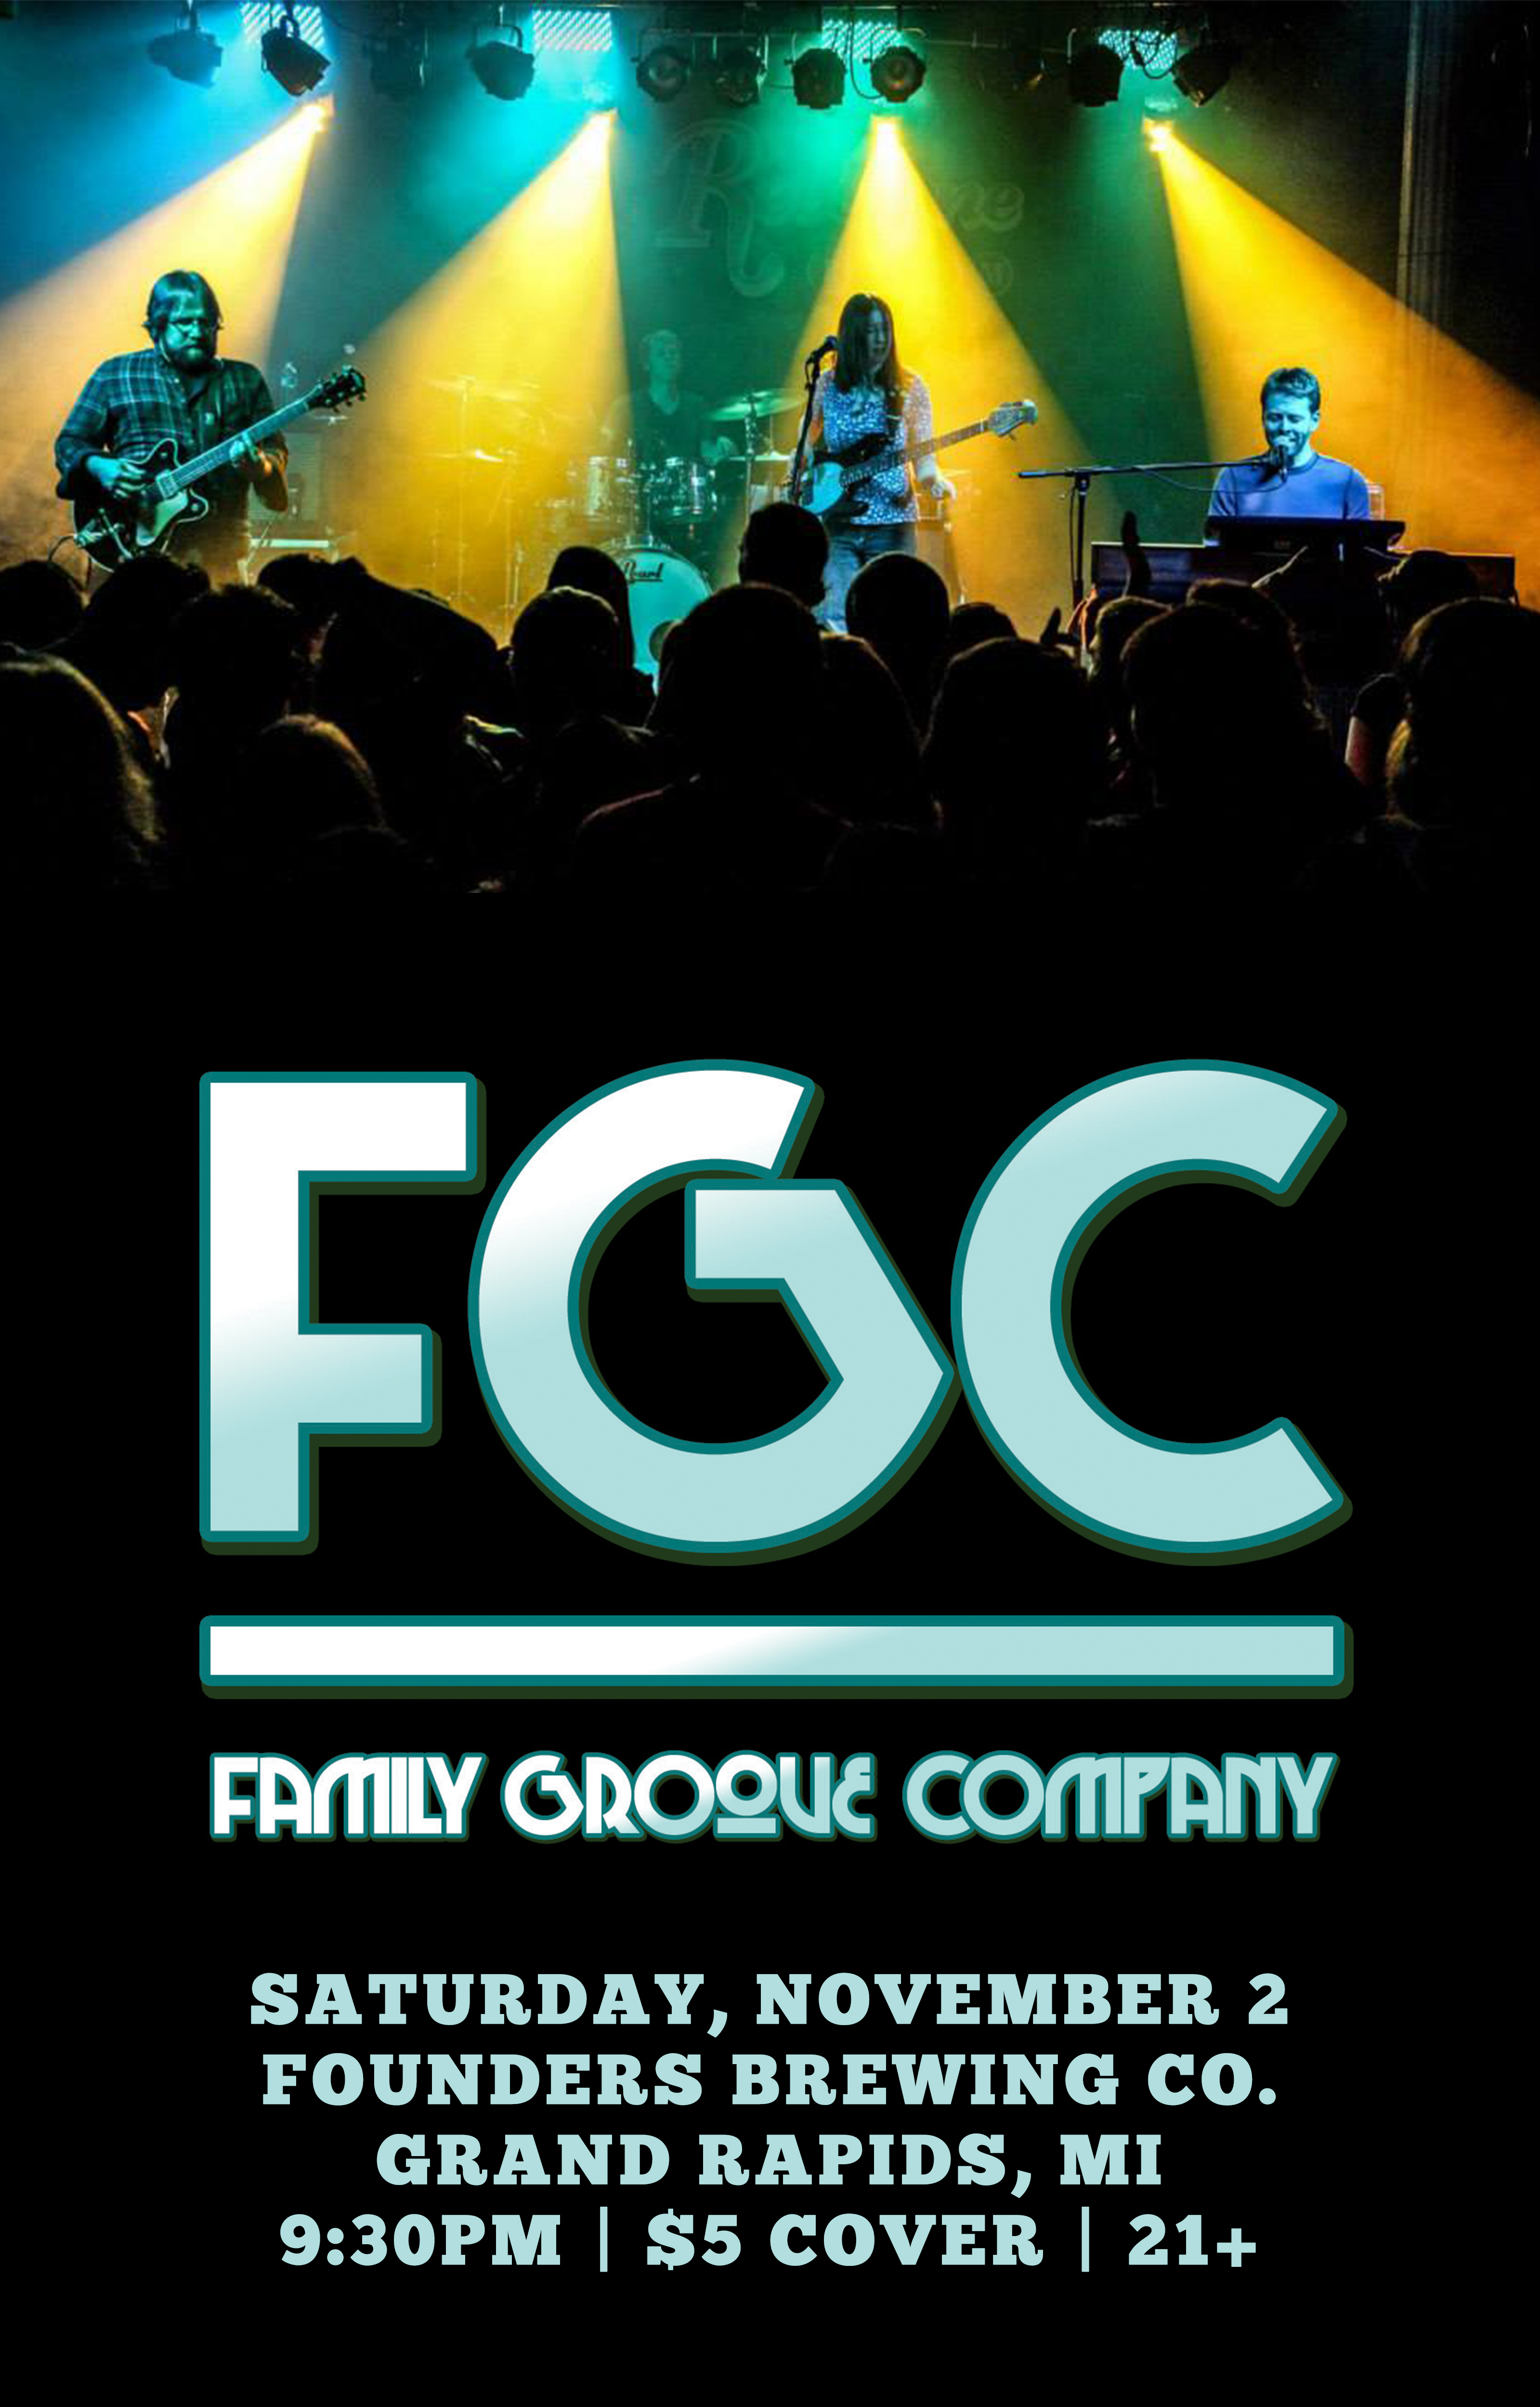 Family Groove Company event poster